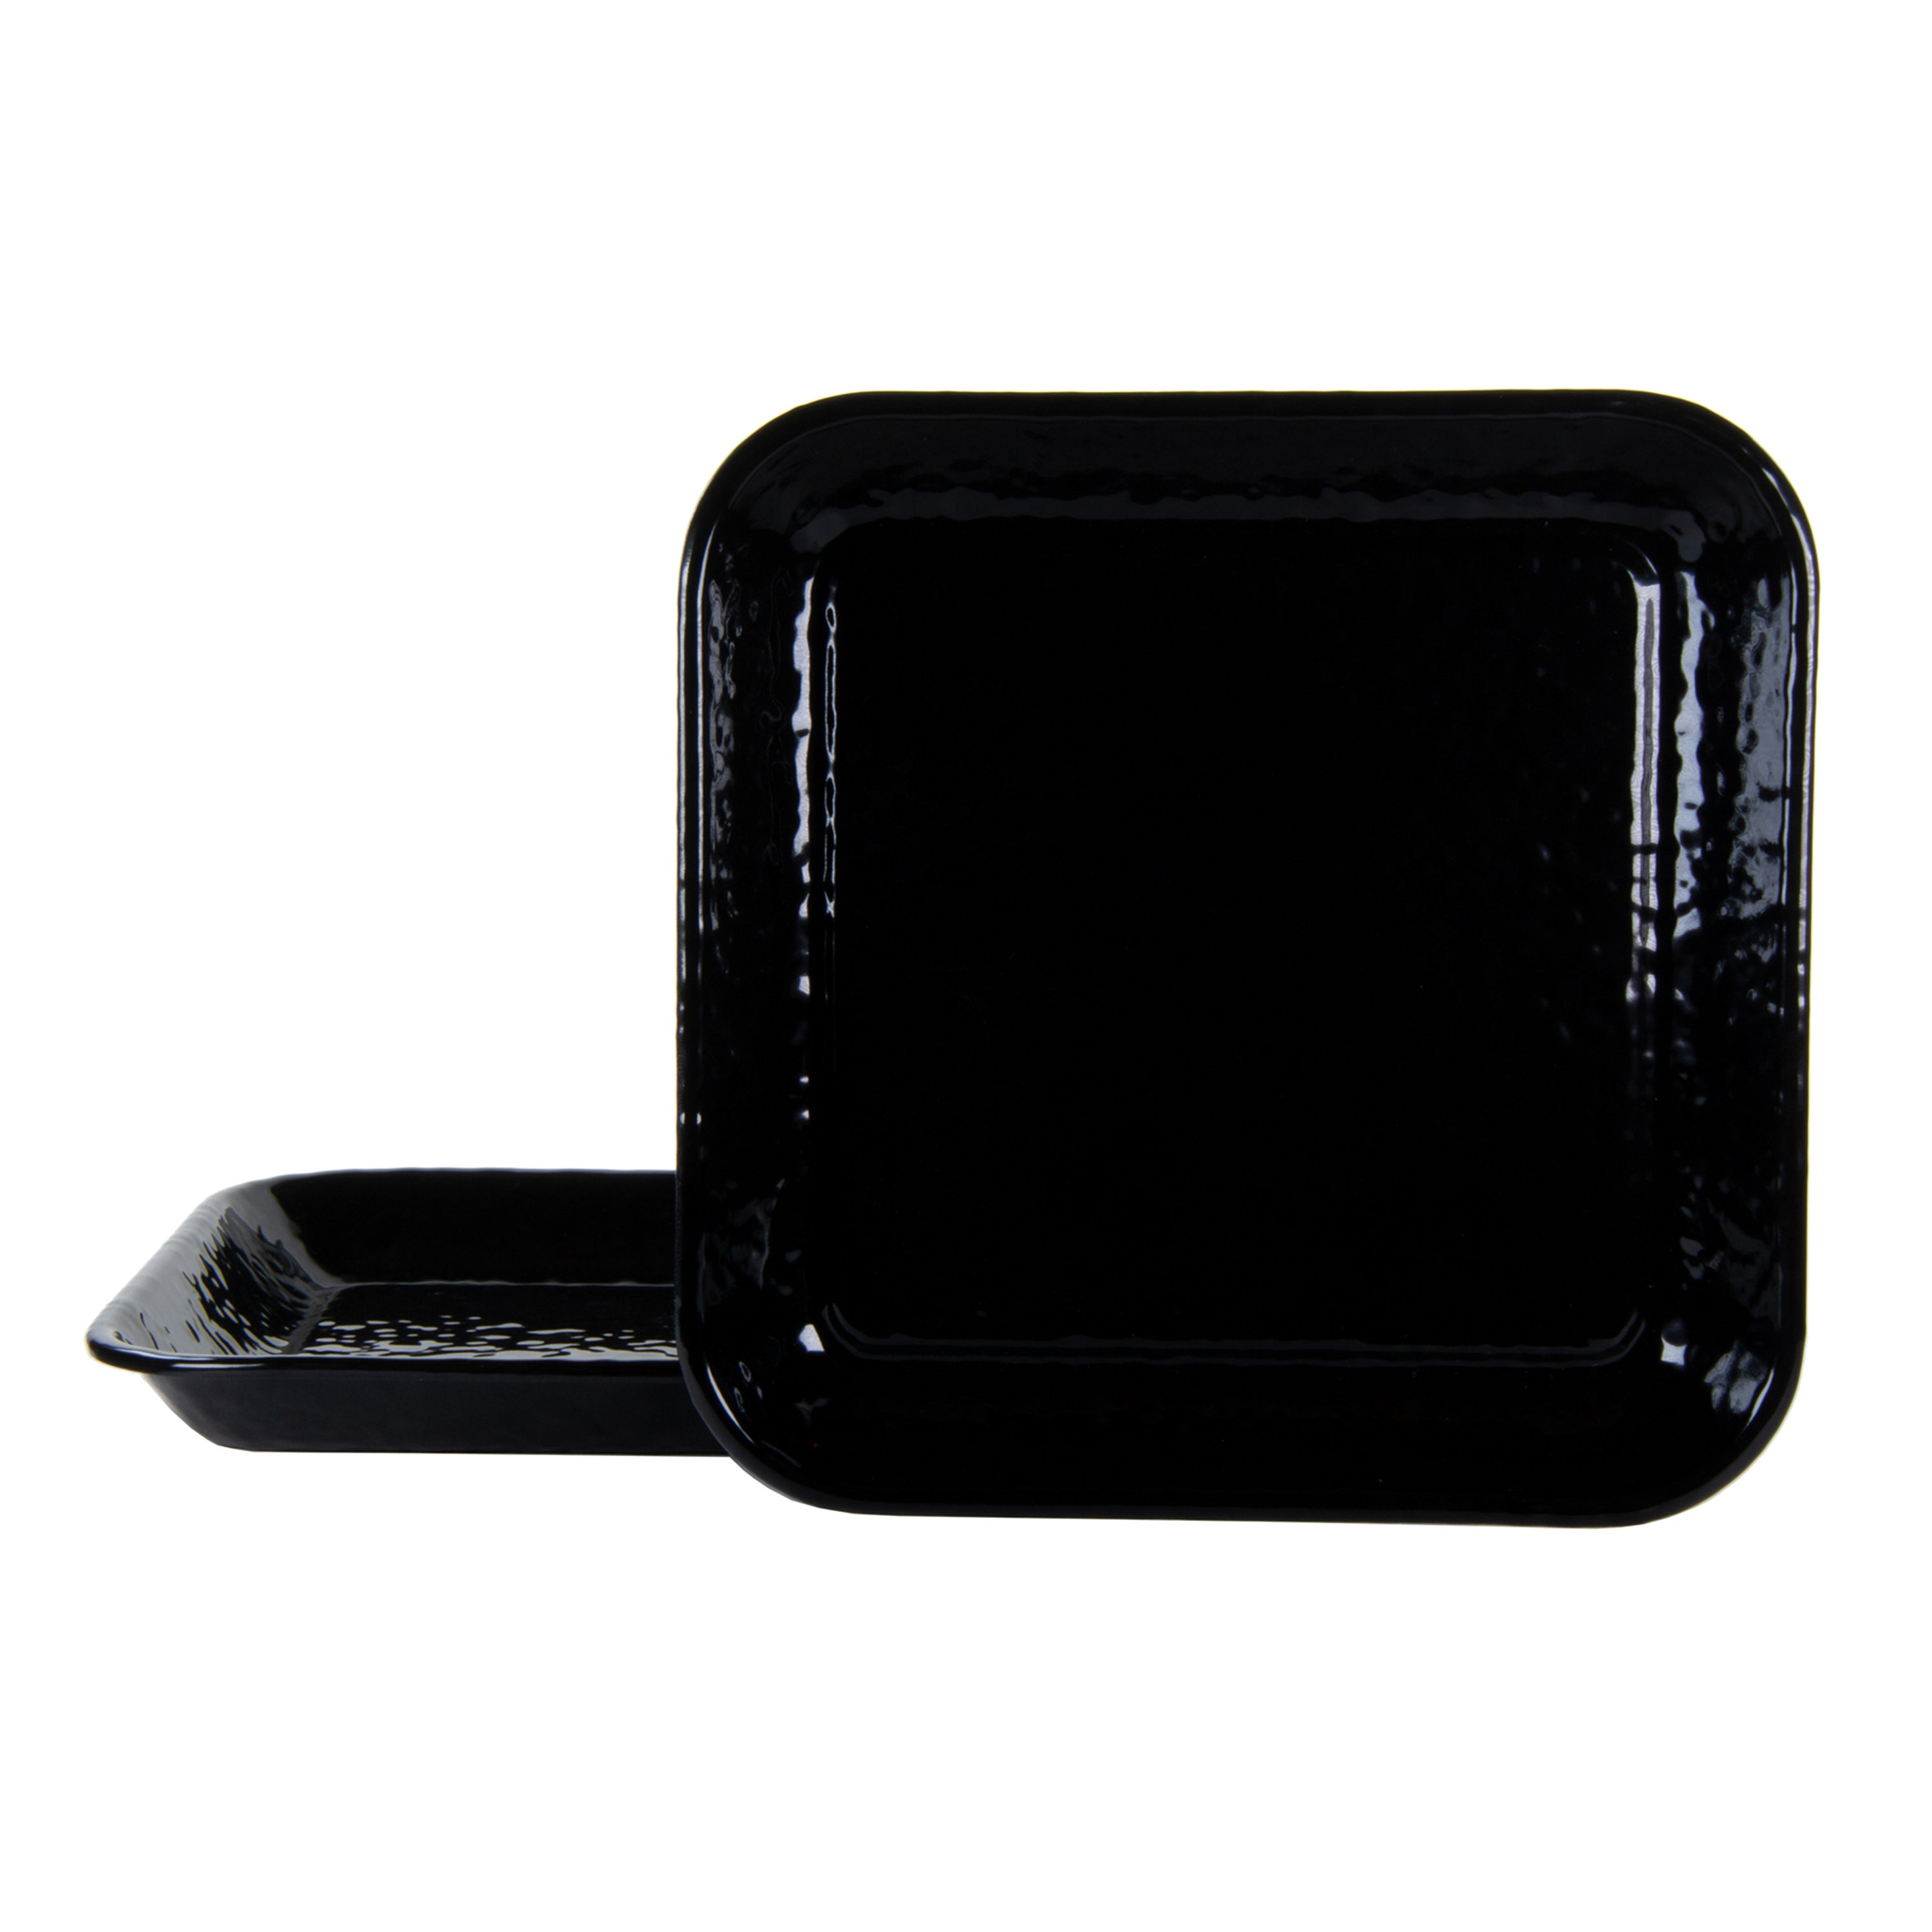 BK09S2 - Set of 2 Solid Black Square Trays Image 1